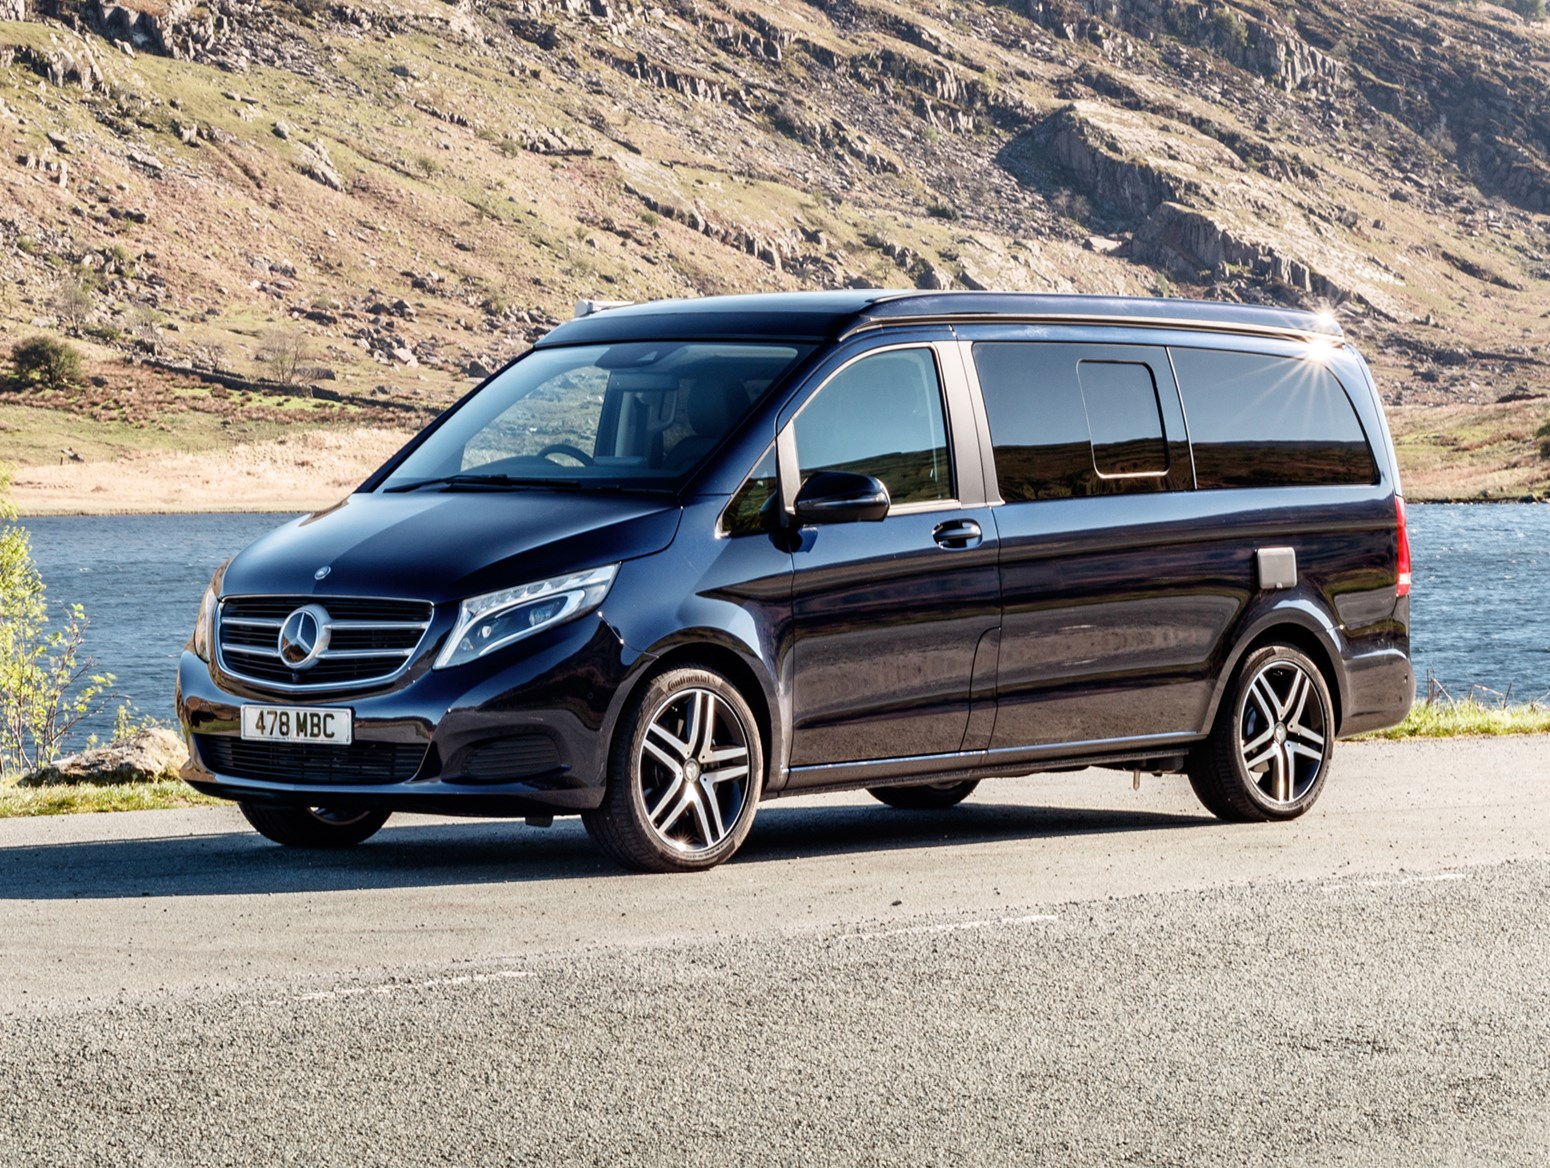 mercedes benz v class marco polo 2017 photos parkers. Black Bedroom Furniture Sets. Home Design Ideas